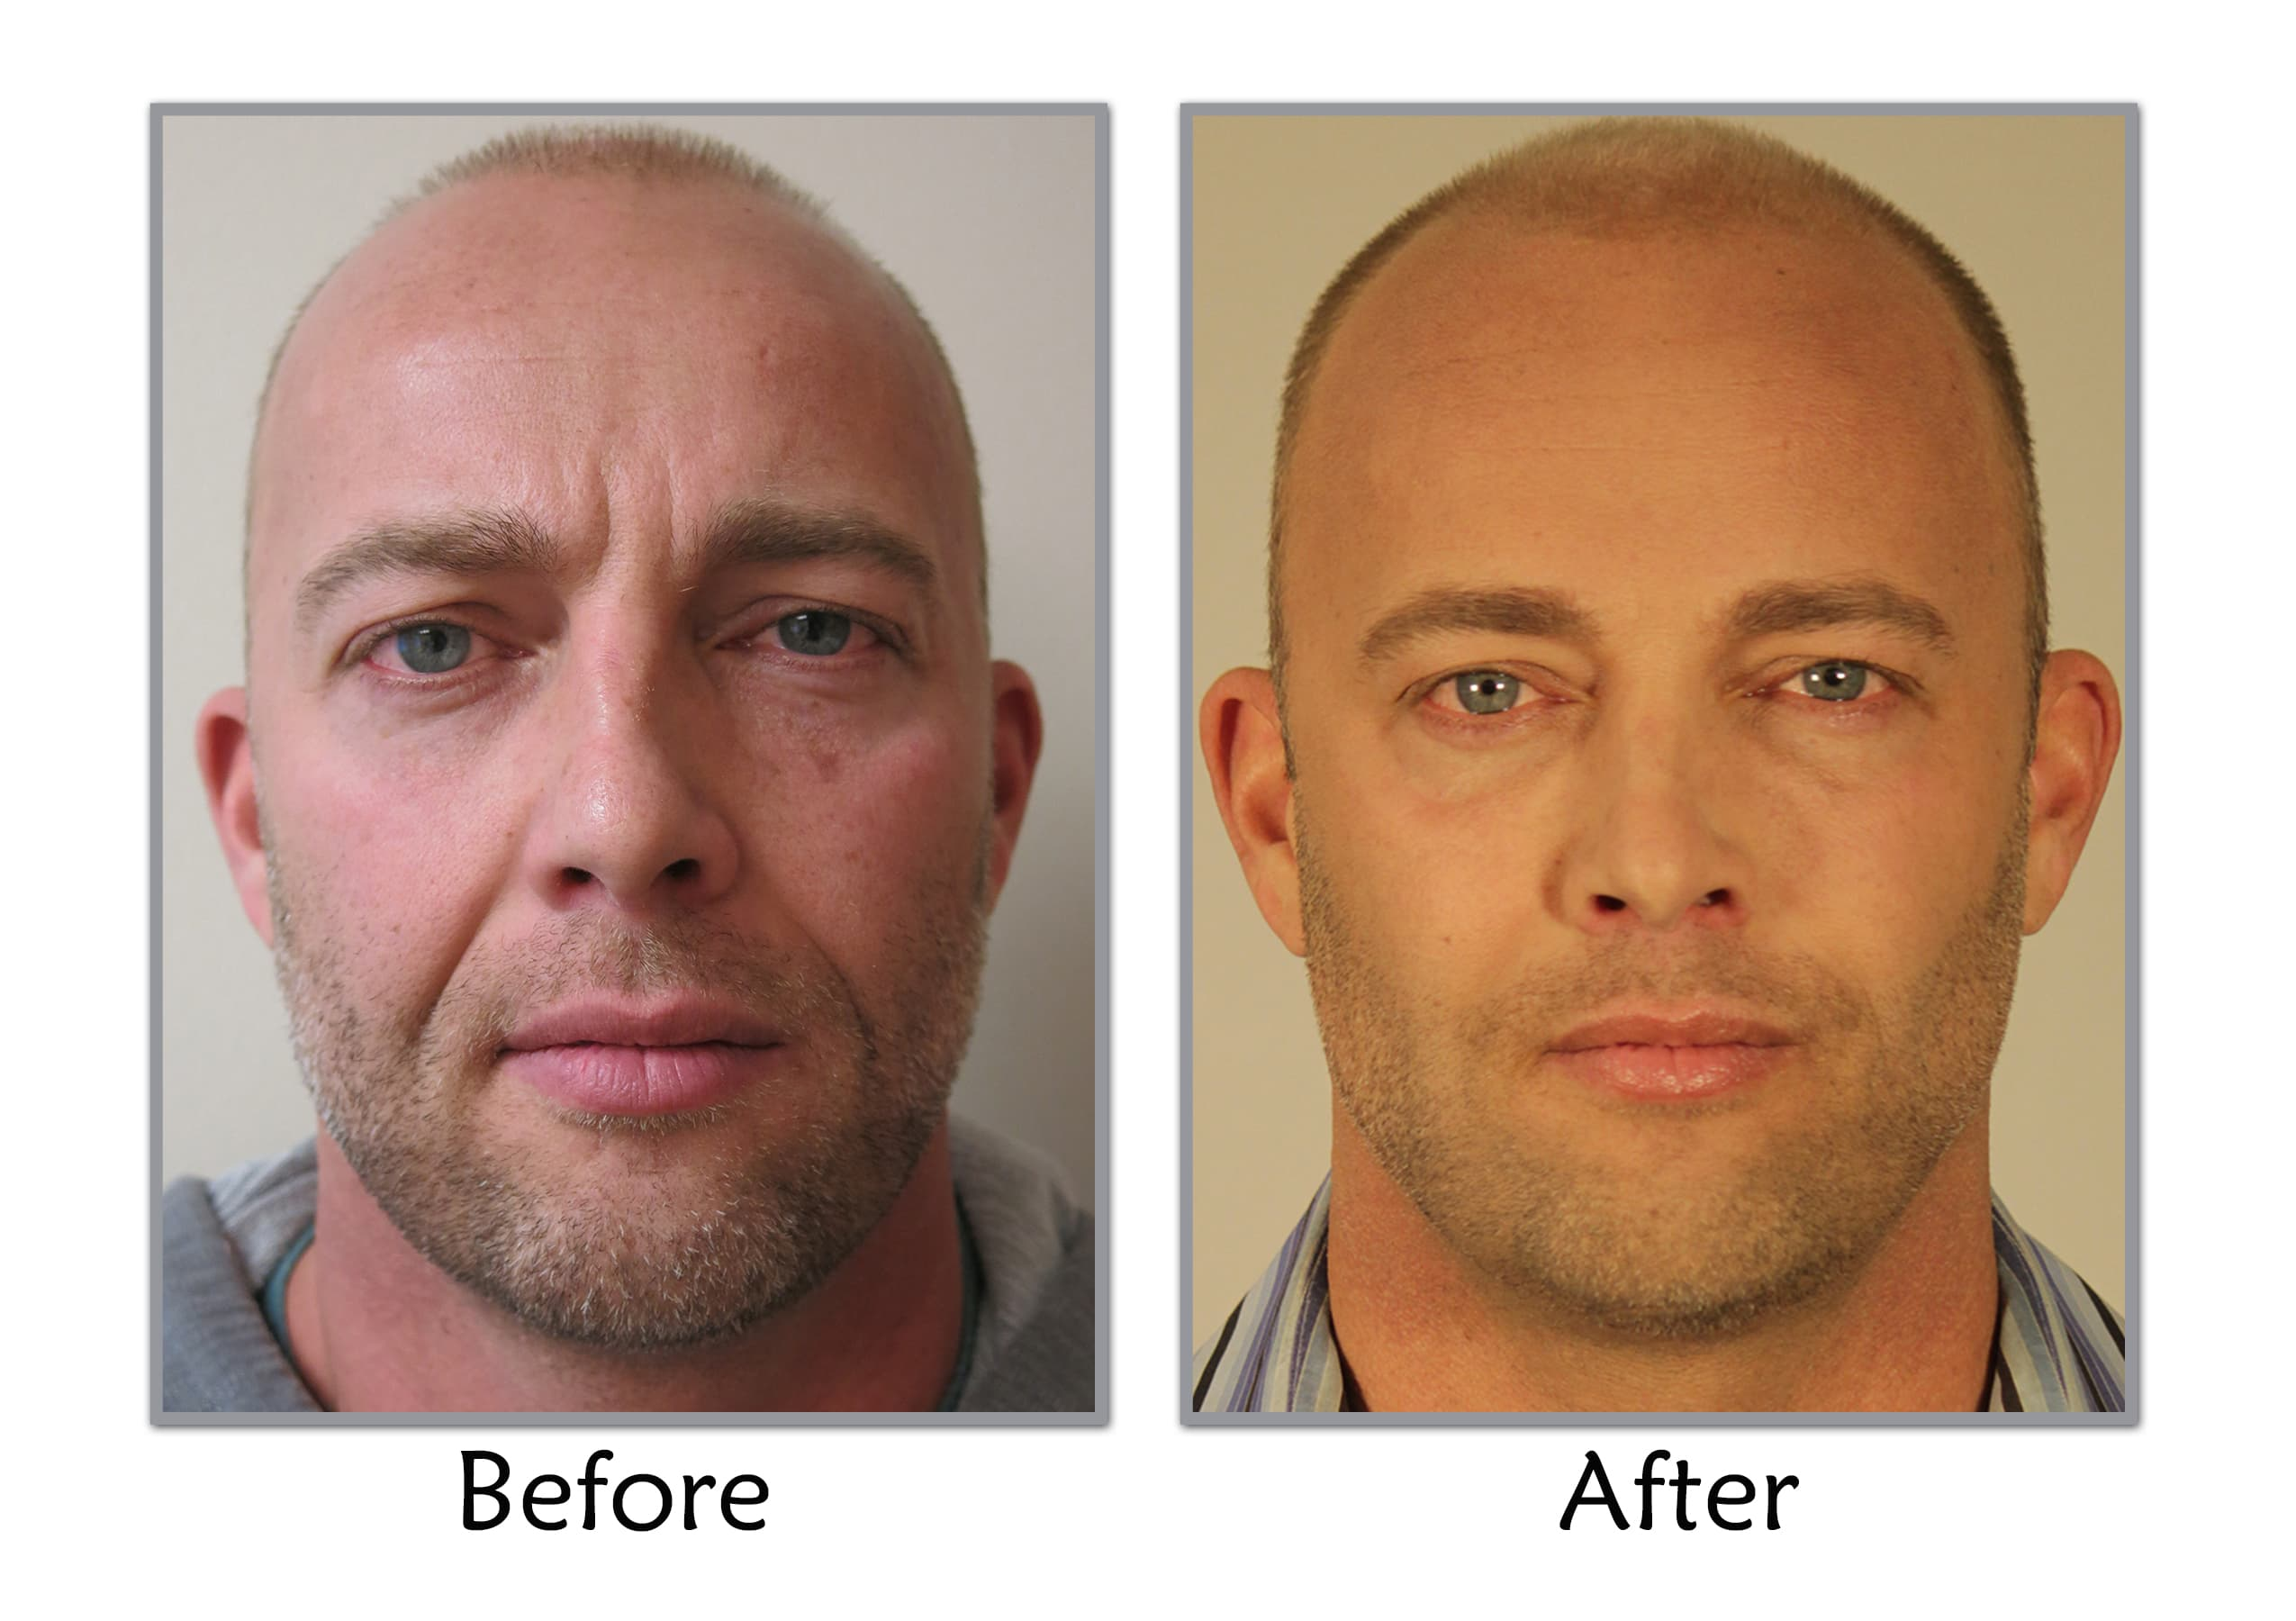 Nose Reconstruction Plastic Man Surgery Photos Before And After 1